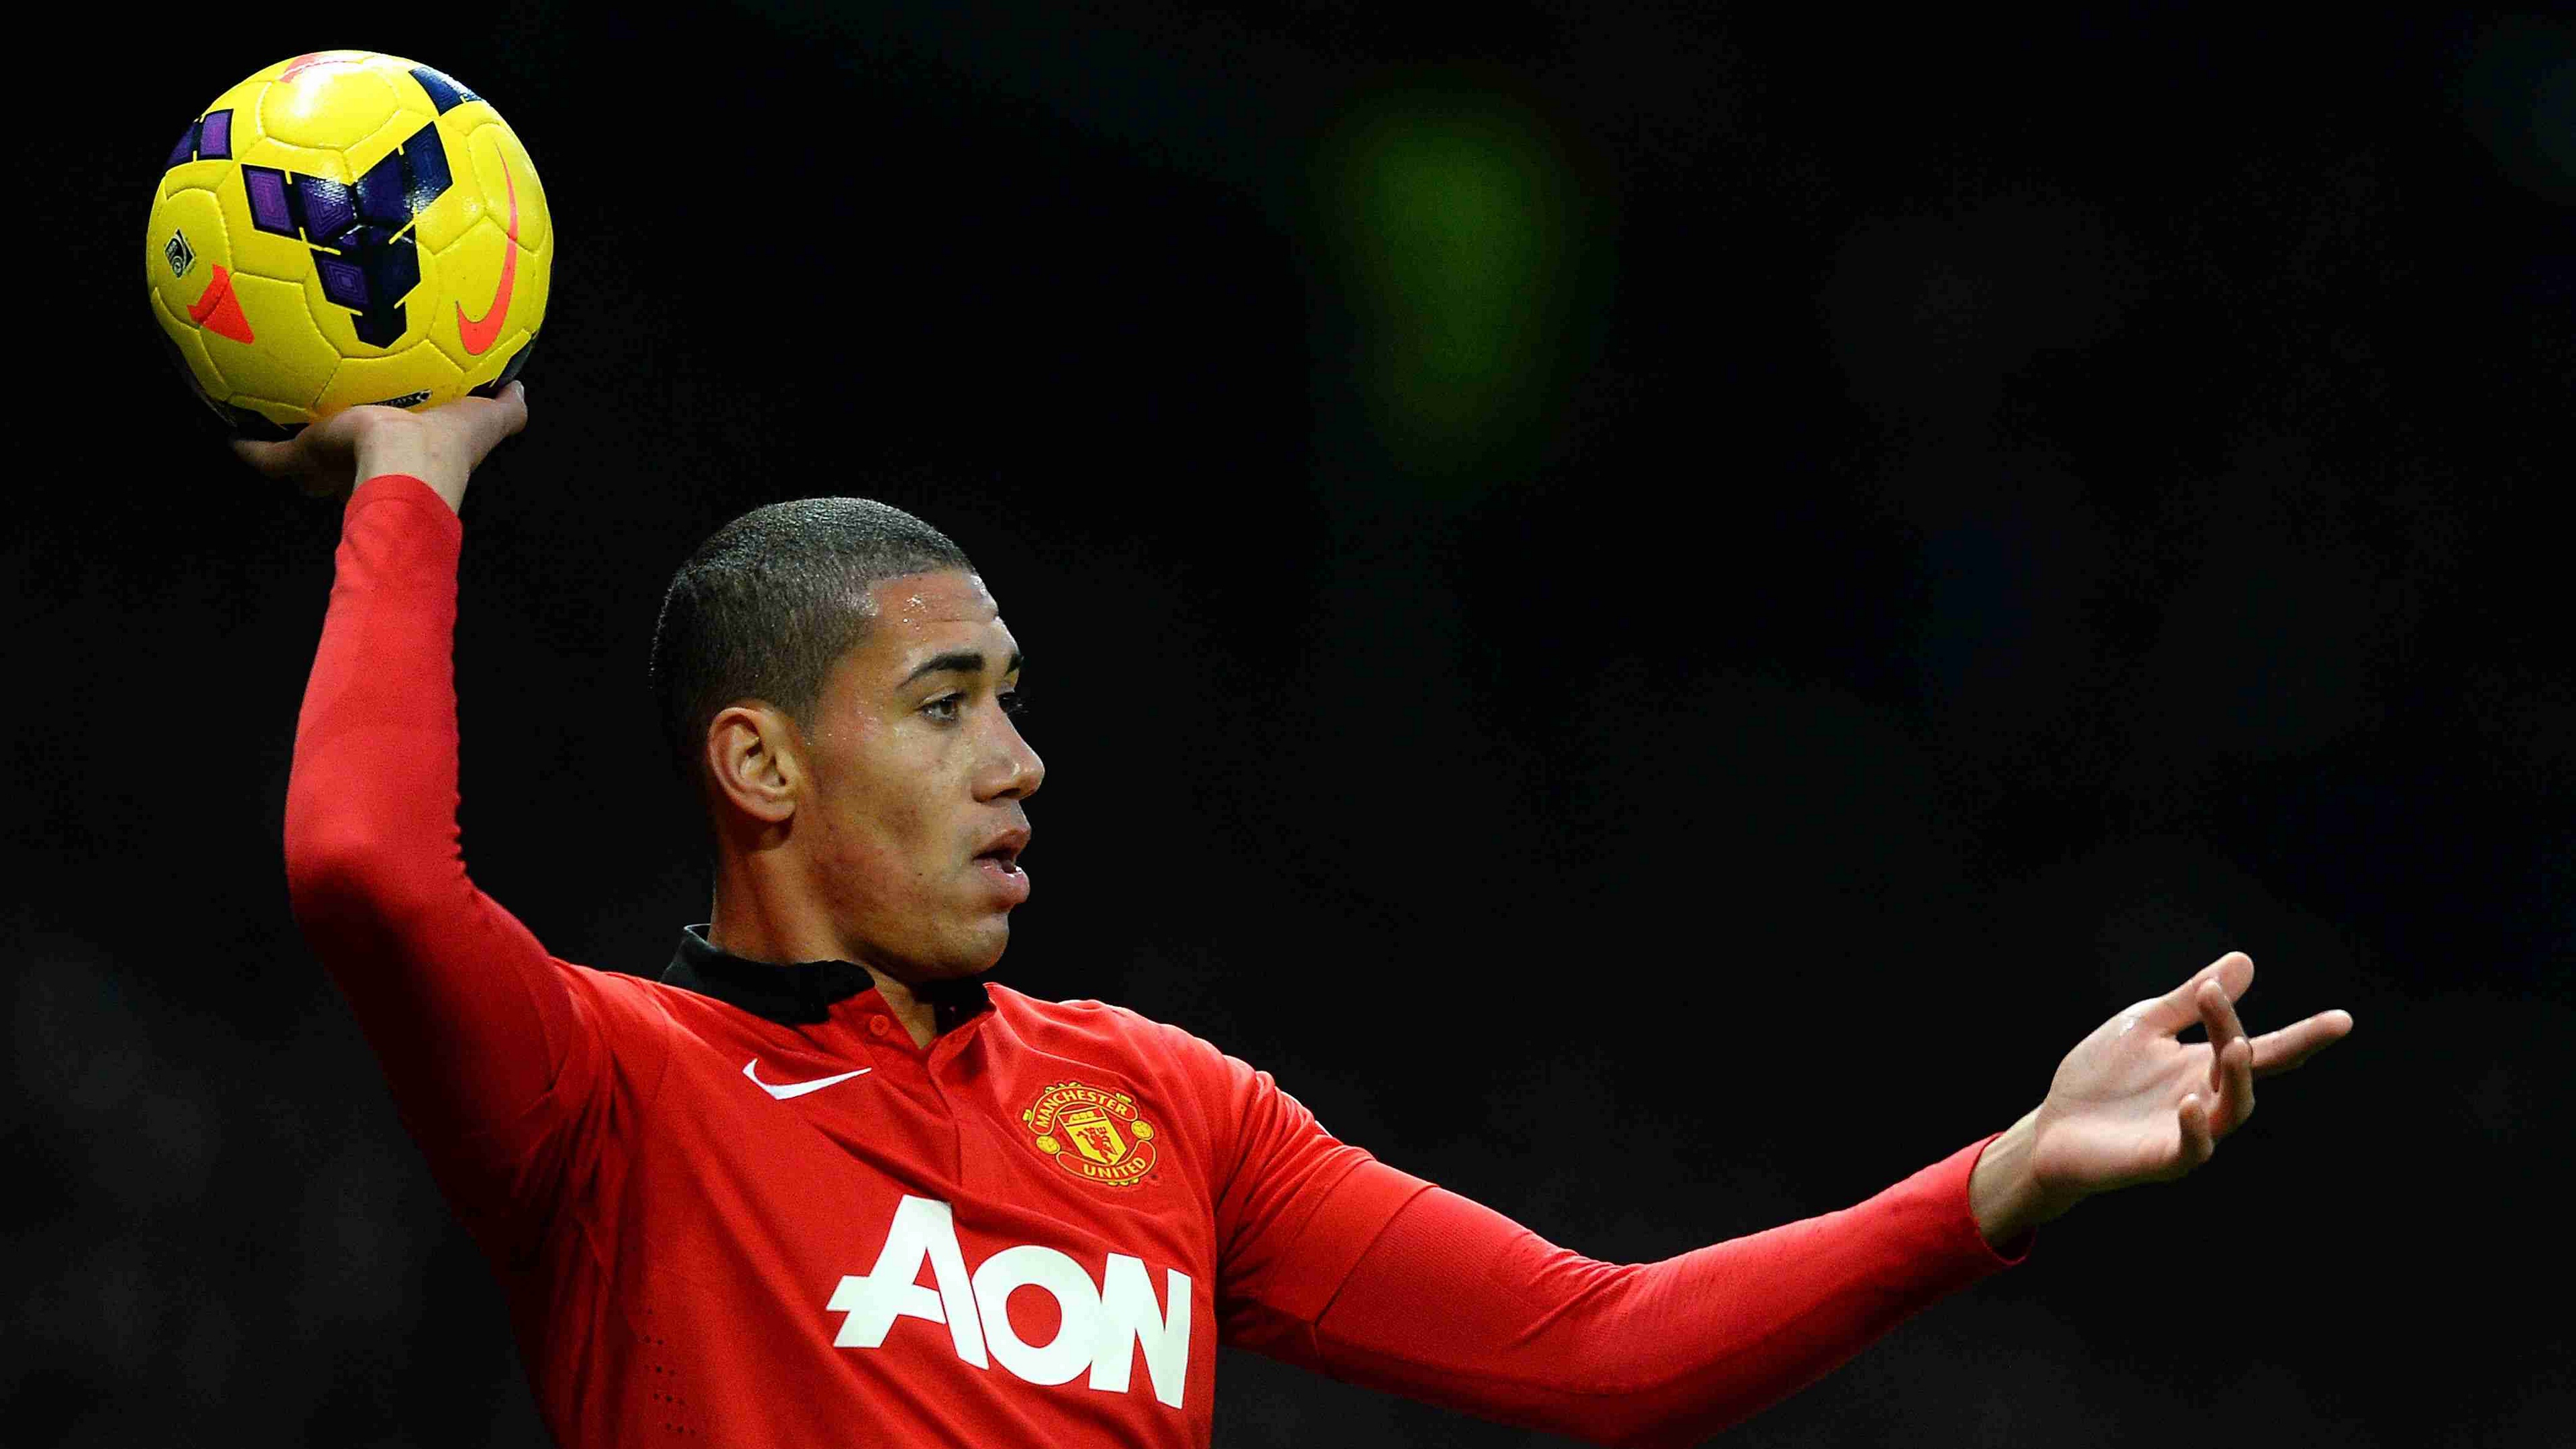 chris smalling football player manchester united 4k 1540063011 - chris smalling, football player, manchester united 4k - manchester united, football player, chris smalling